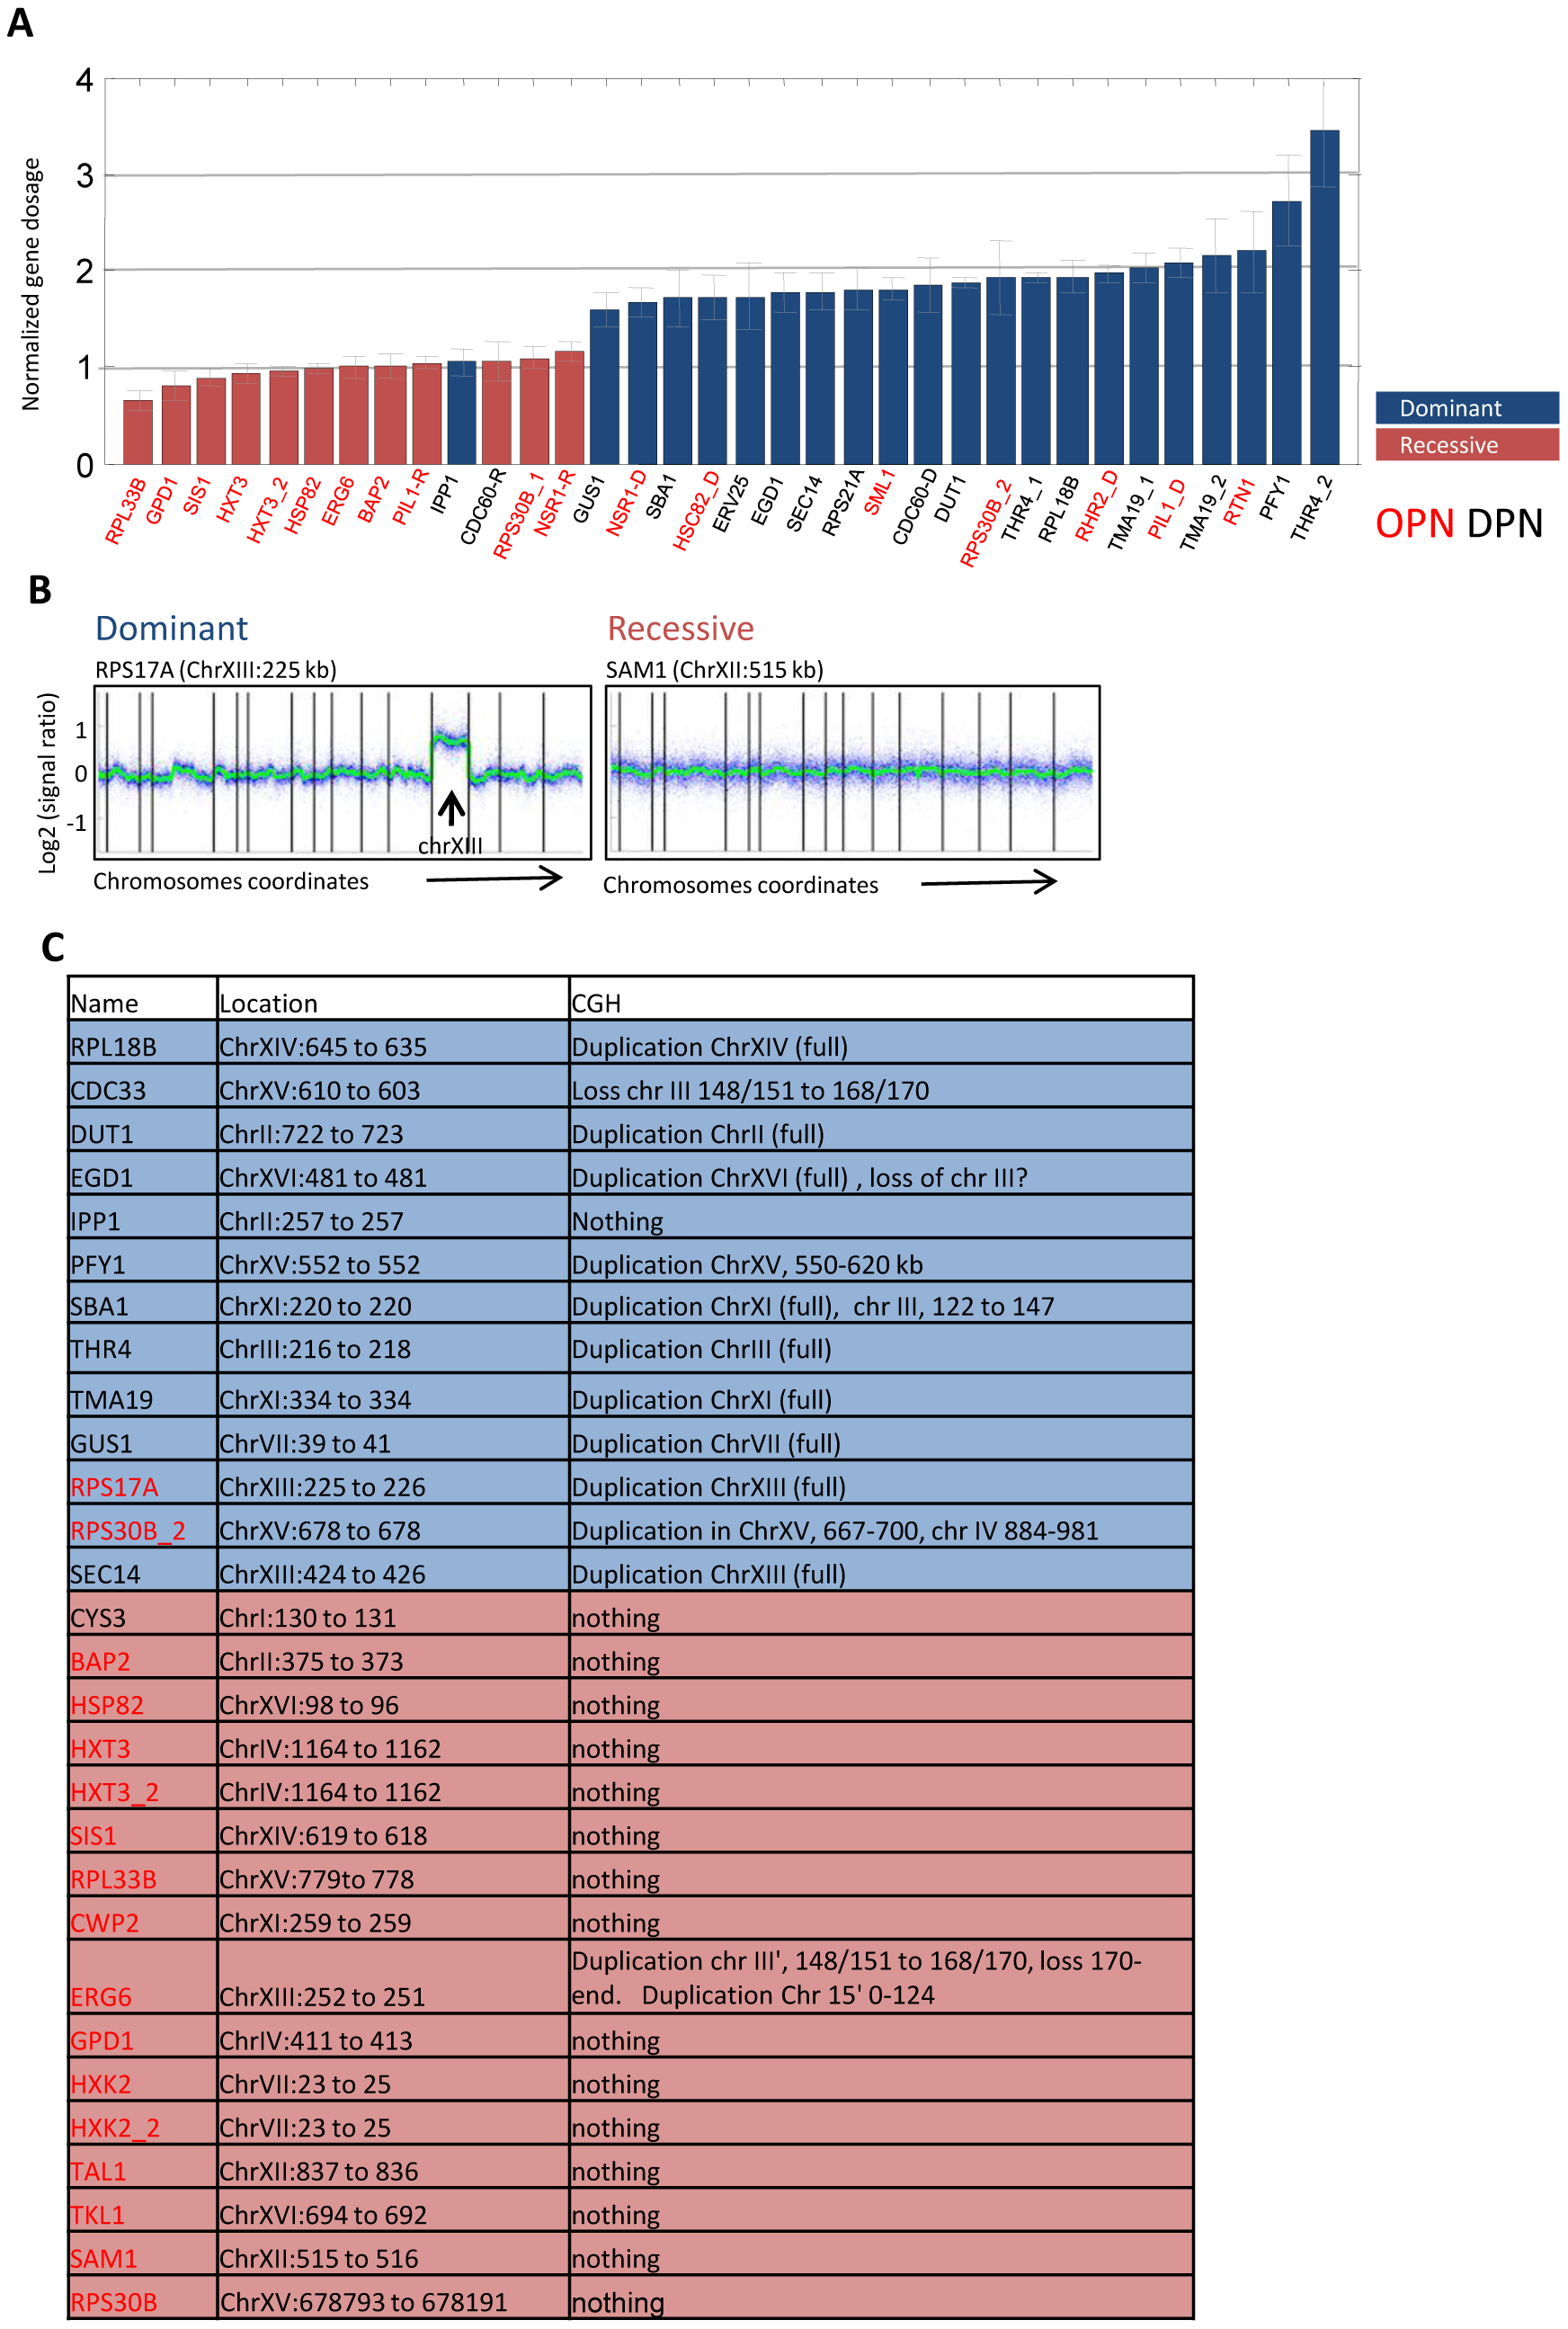 Dominant mutations involve large-scale genomic duplications.